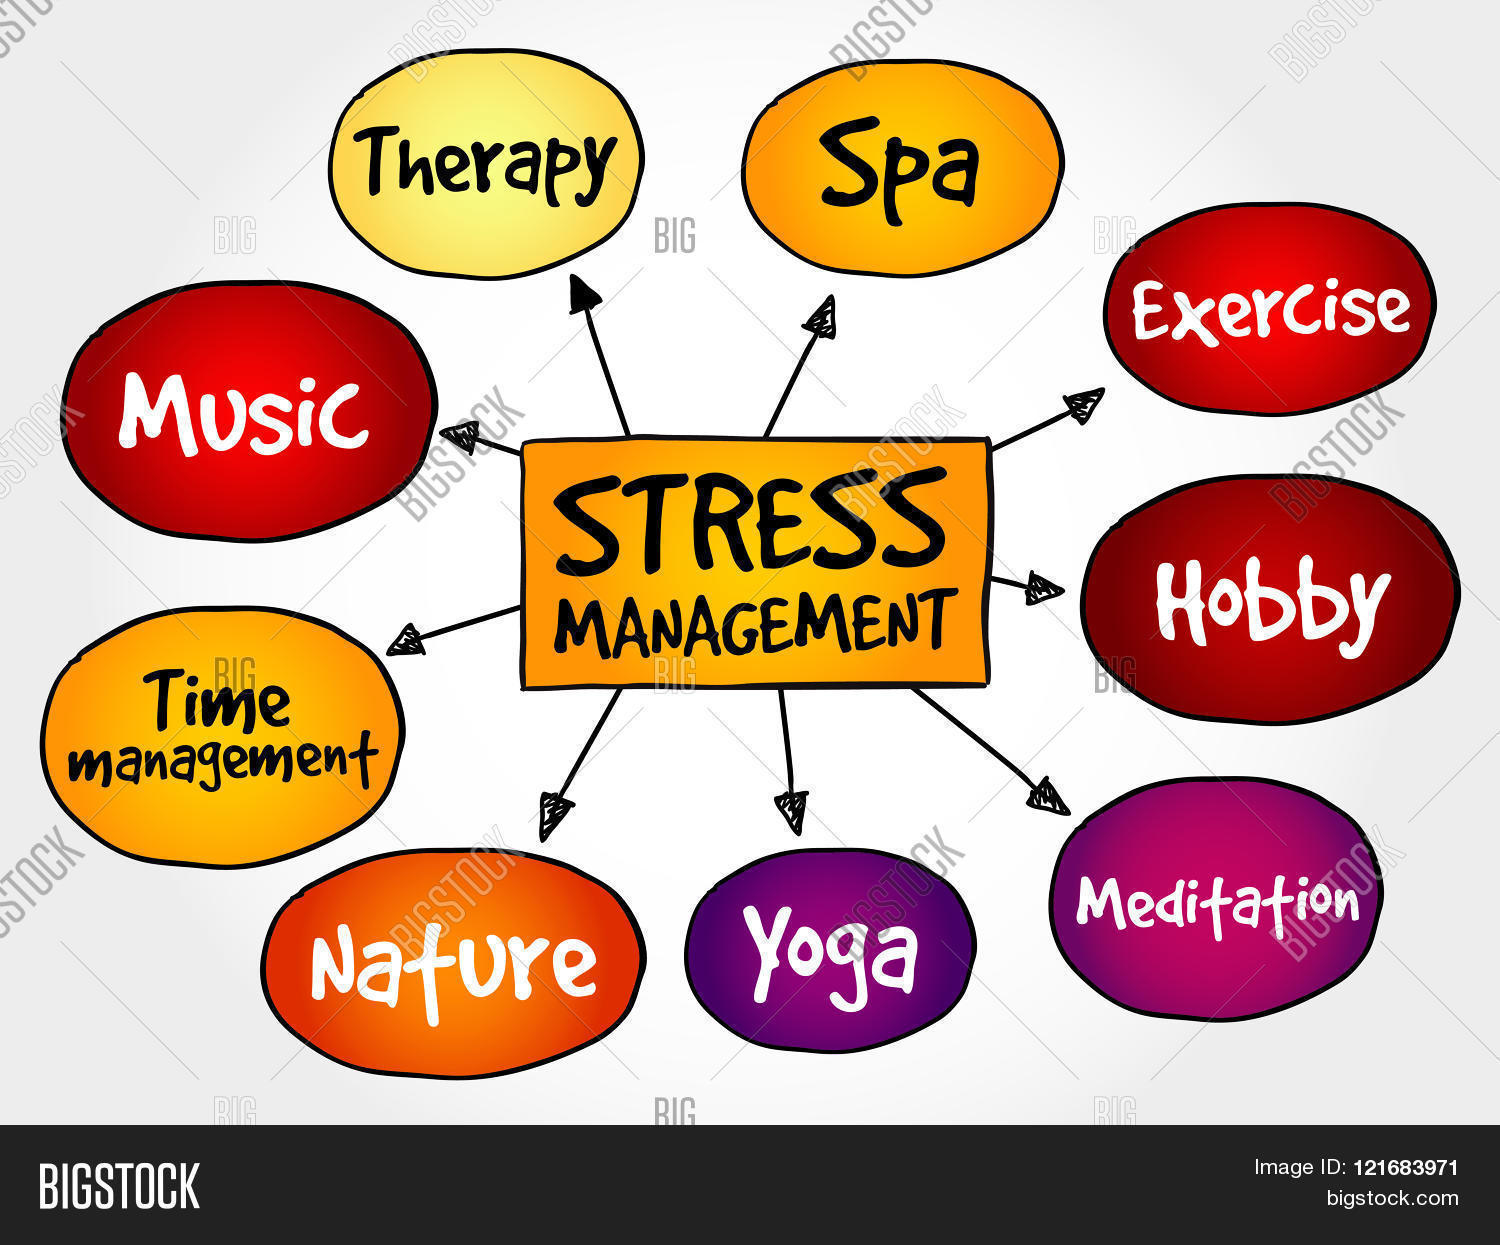 Stress Management mind map business concept, presentation background Stock Photo u0026 Stock Images ...